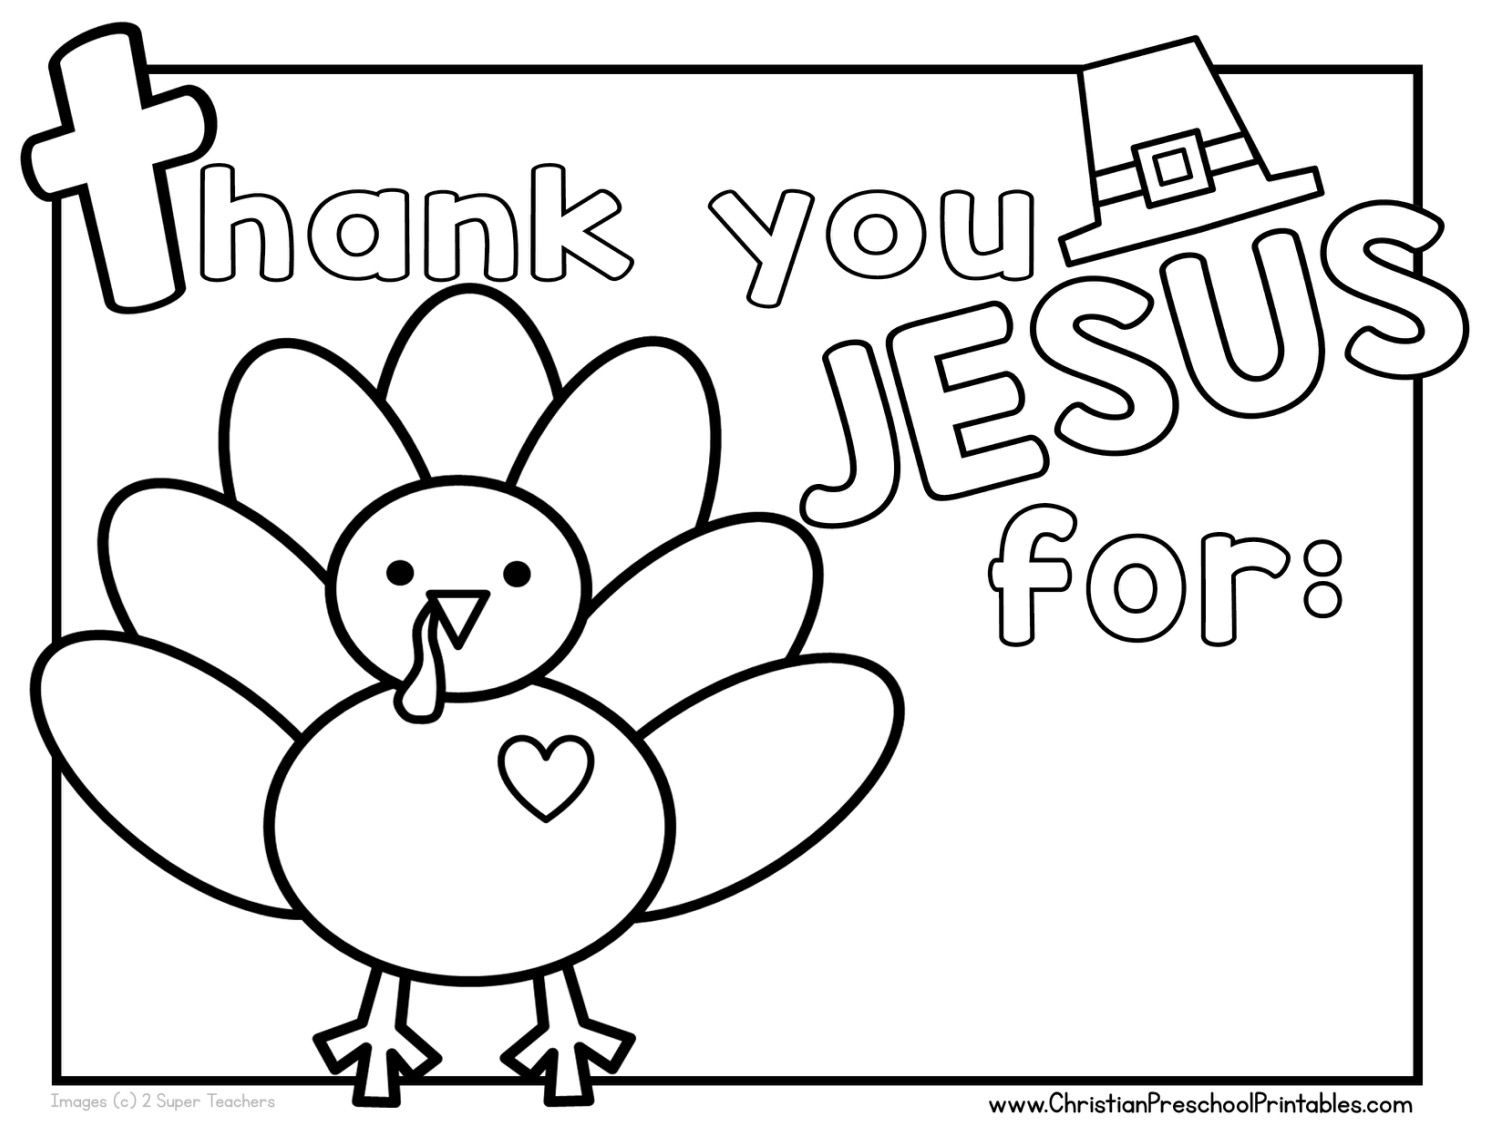 Free sunday school lessons coloring pages coloring pages for Christian thanksgiving coloring pages for kids